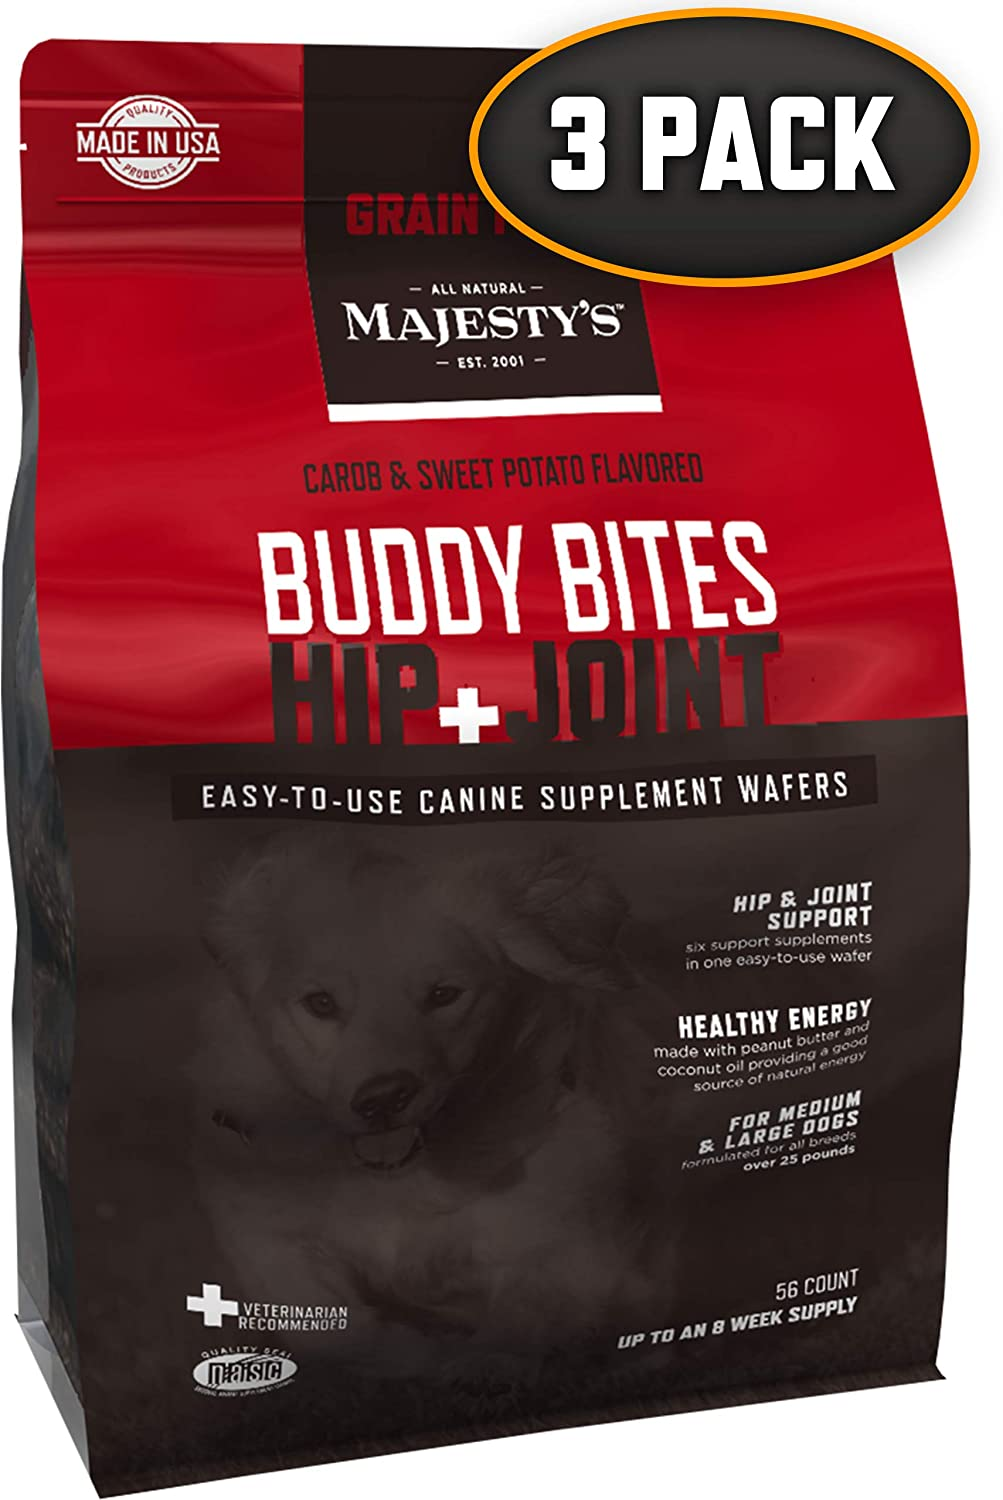 Majesty's Hip+Joint Grain-Free Buddy Bites - 56 Count, Medium/Large Dog - Bones, Joints & Cartilage Support Supplement - Carob/Sweet Potato Flavored - Glucosamine, Chondroitin - Mobility & Pain